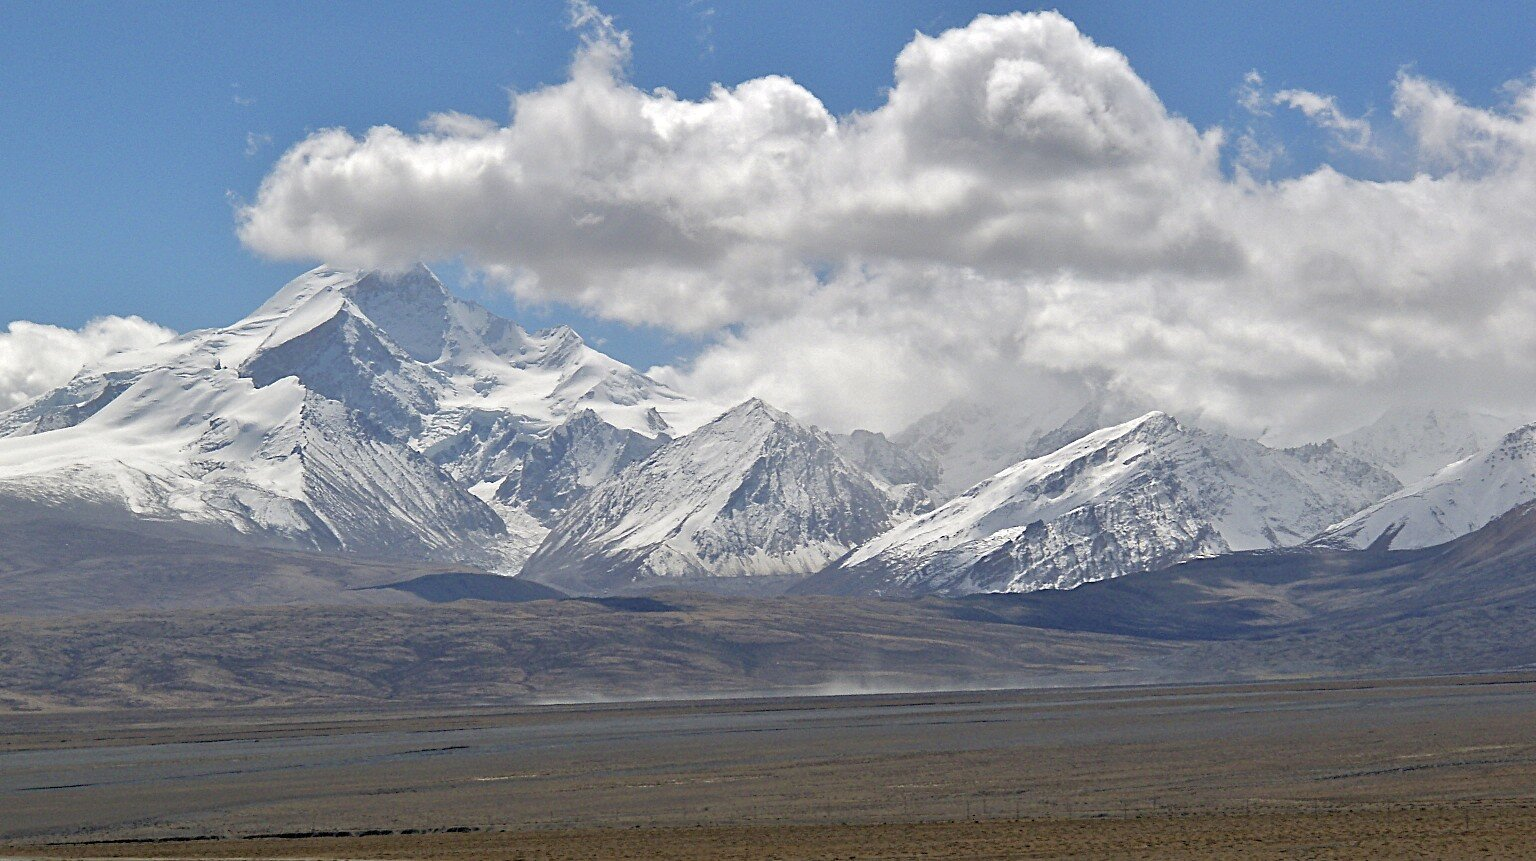 The Langtang Range from the Tibetan side.  The large mountain on the left is Lantang Ri.